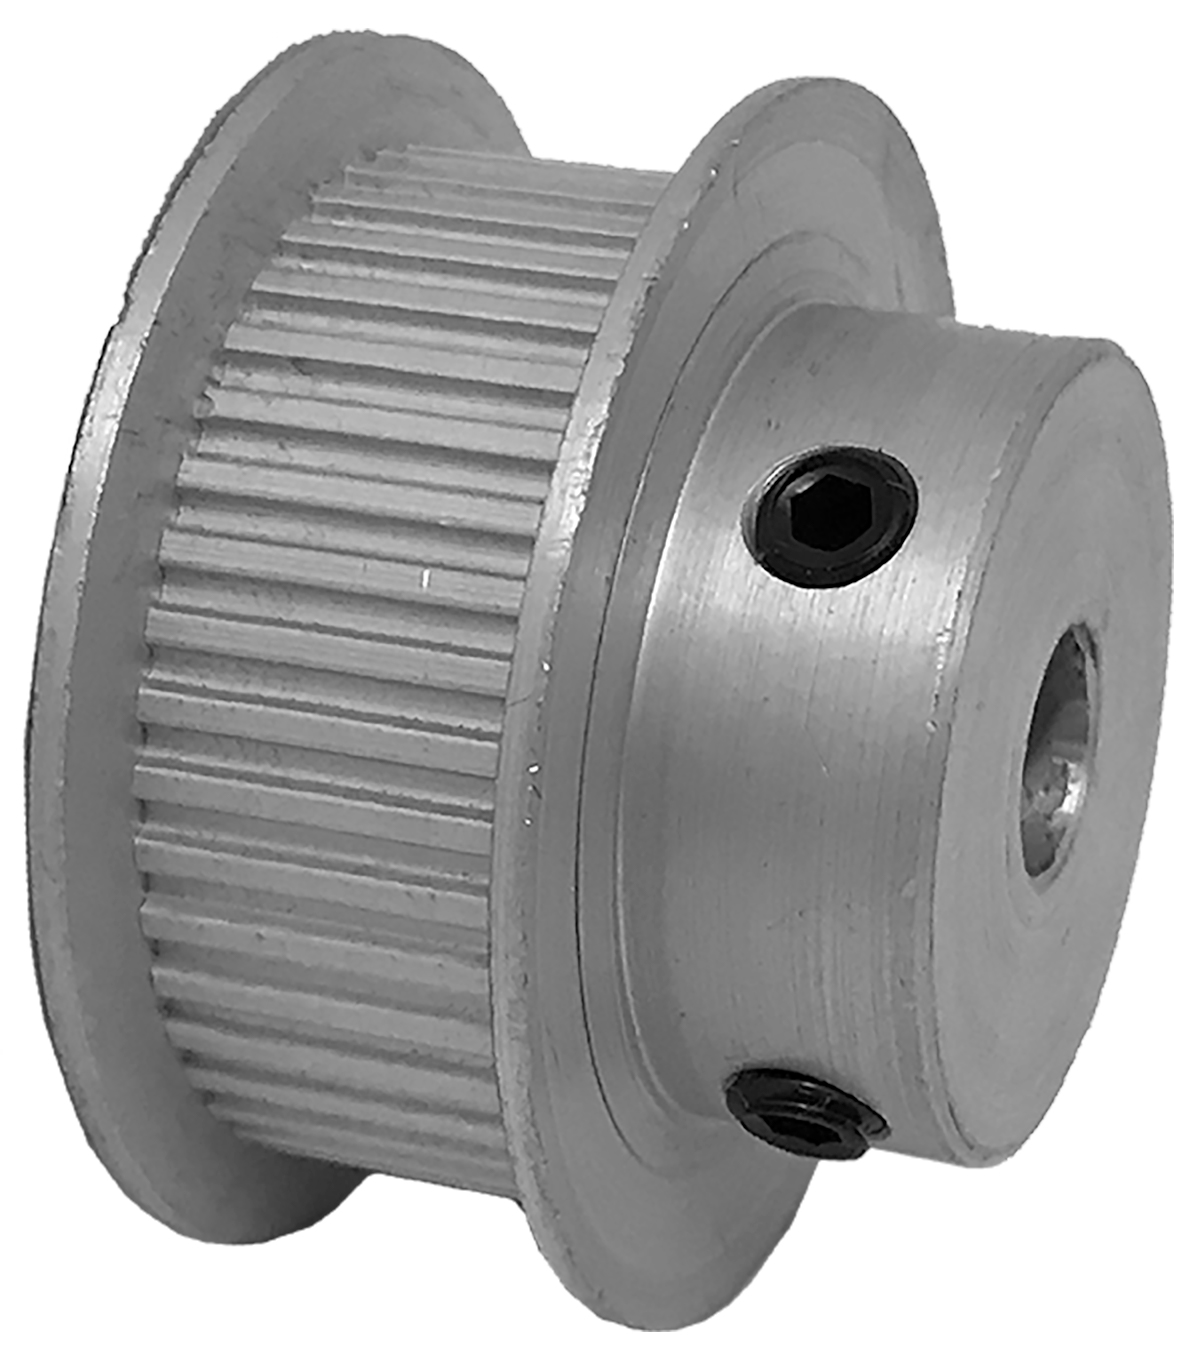 44MP037-6FA3 - Aluminum Imperial Pitch Pulleys